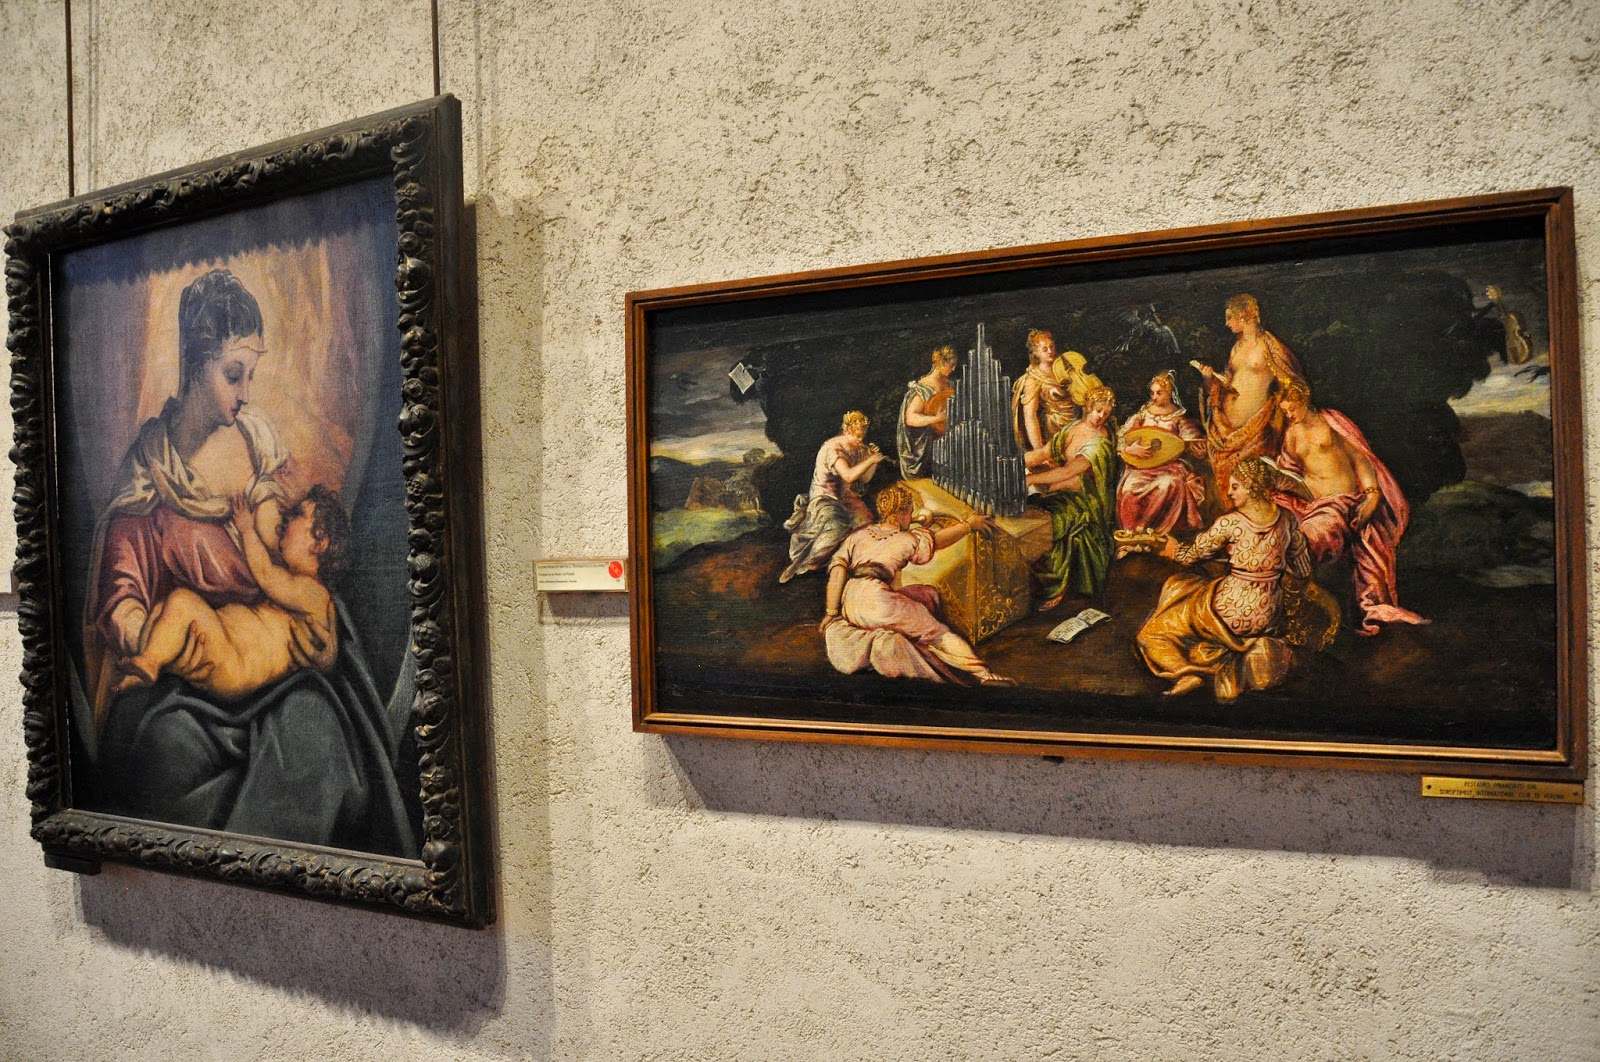 Paintings by Tintoretto and a whole host of artists adorn the walls in the Museum of Castelvecchio in Verona